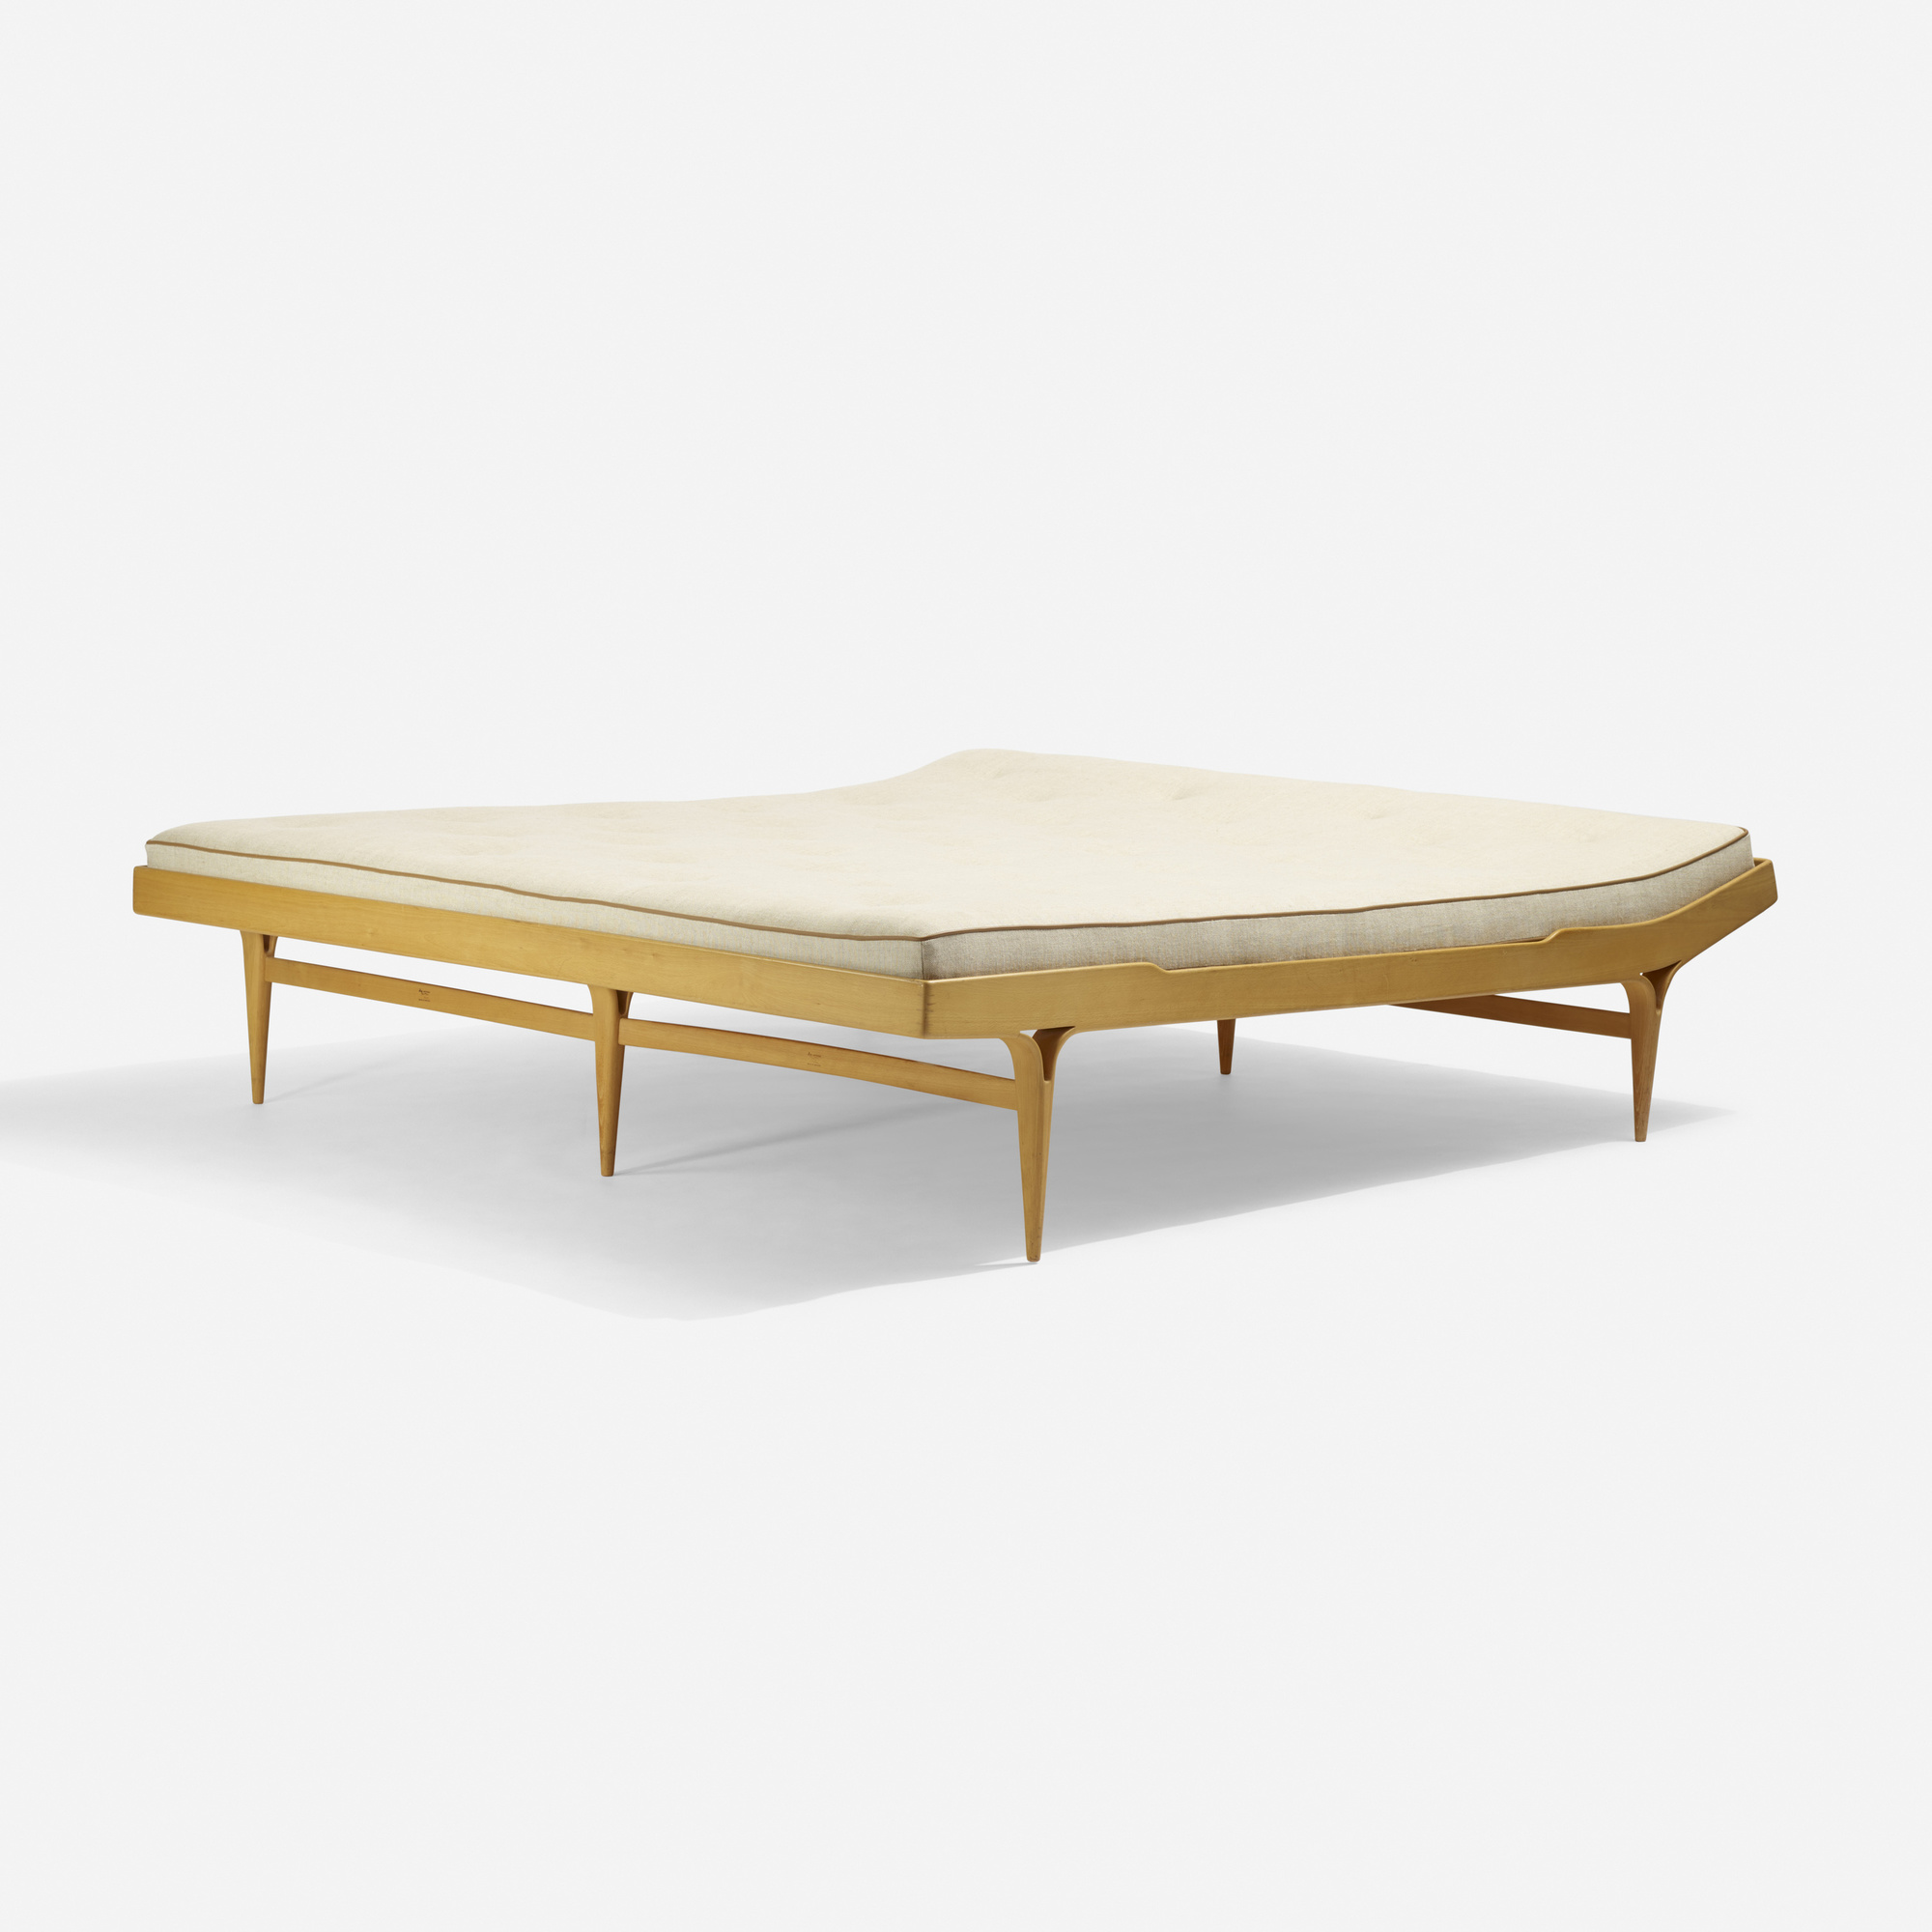 317: Bruno Mathsson / daybed (1 of 3)